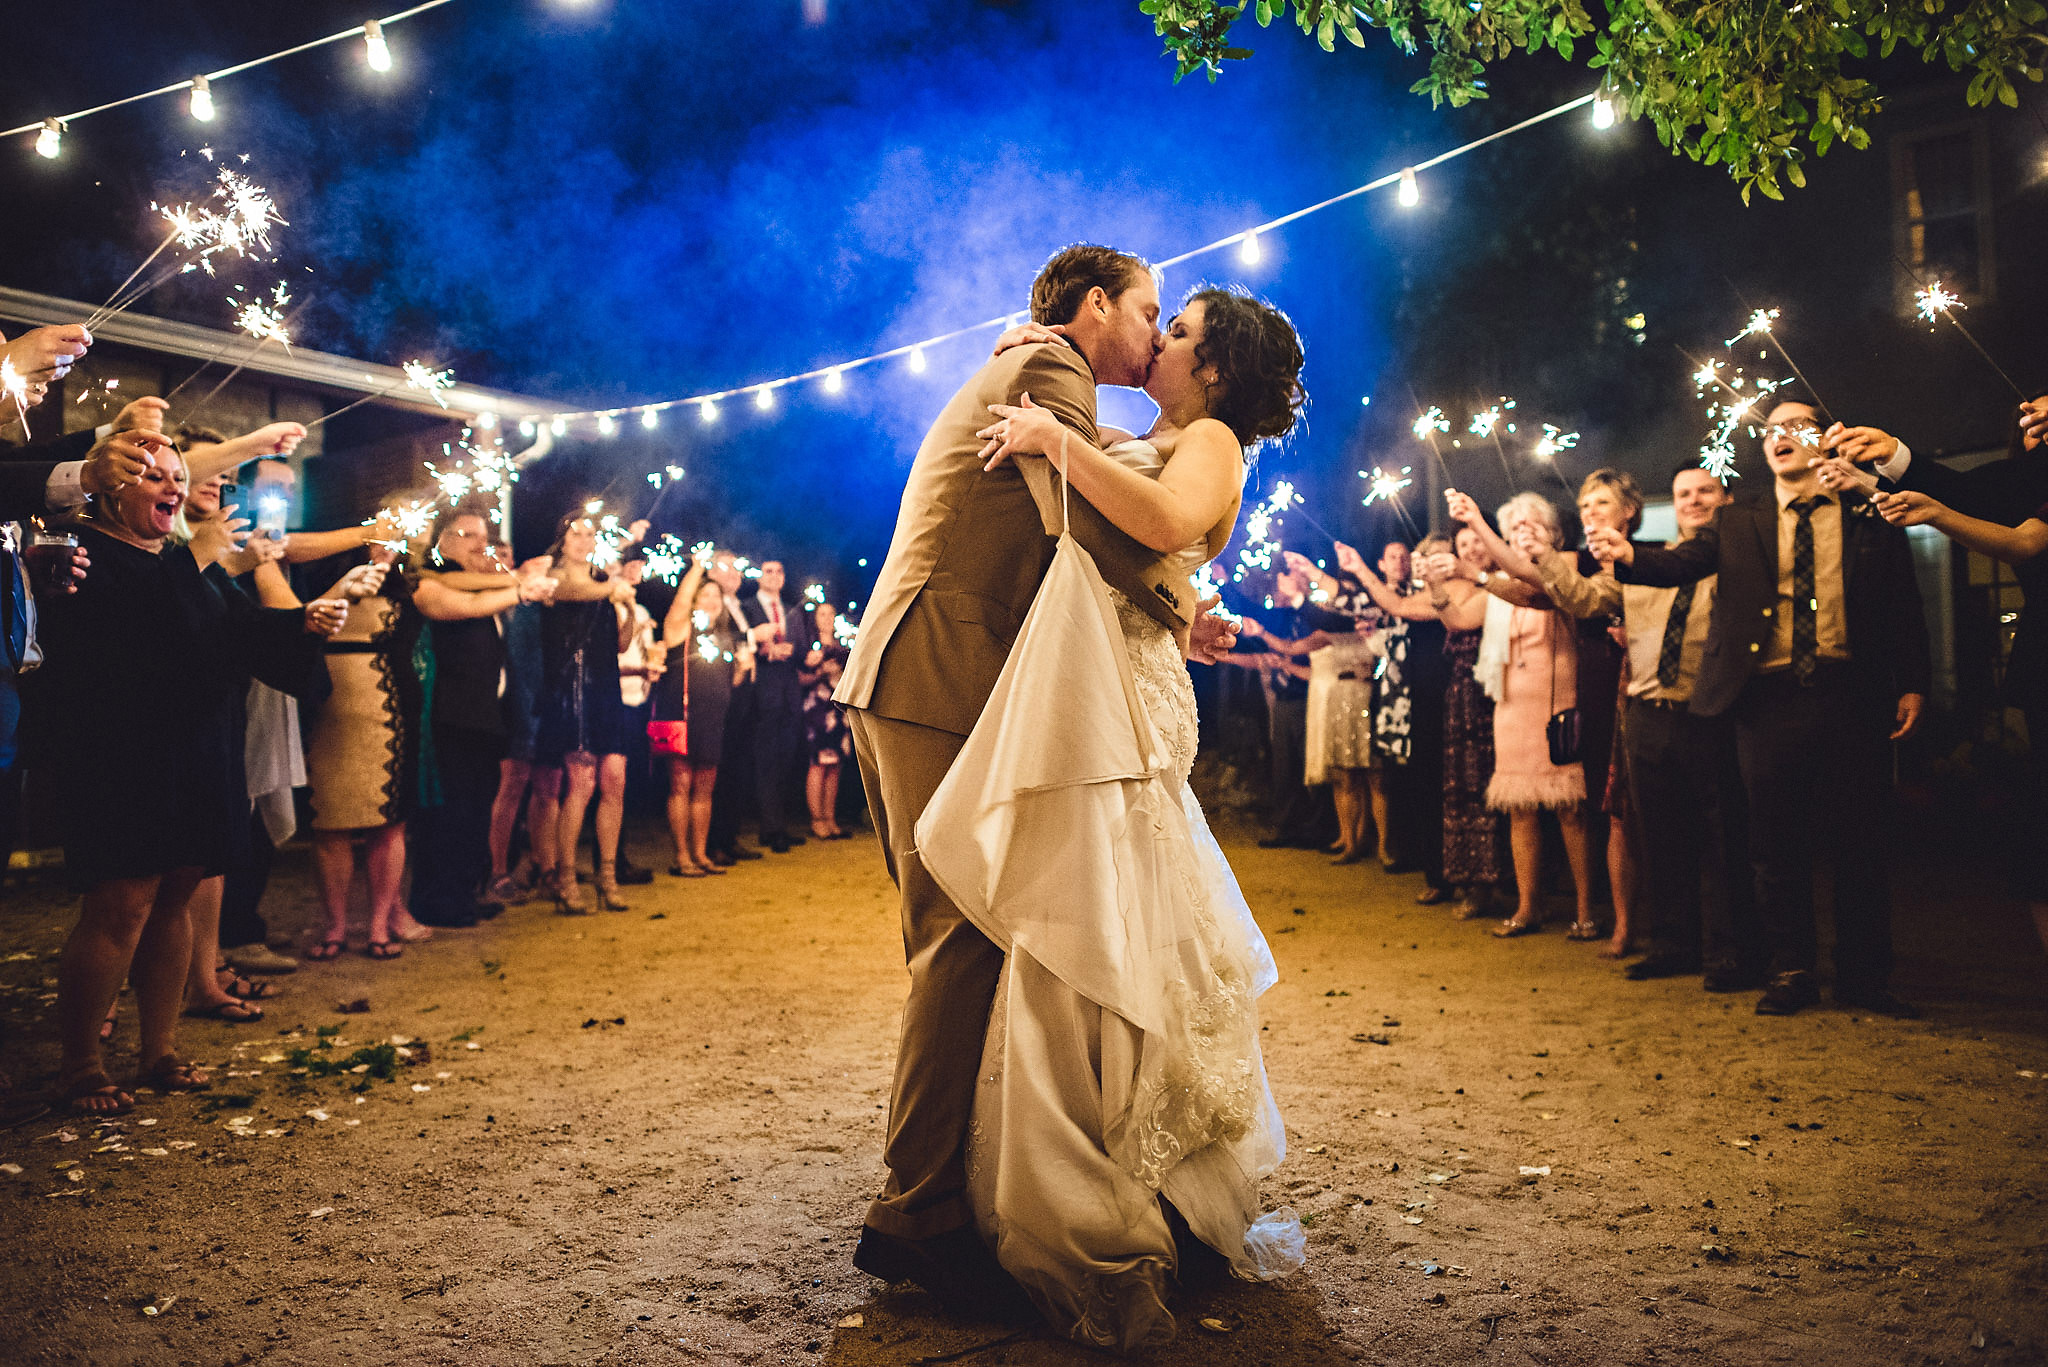 Eirik Halvorsen rustic wedding Fredericksburg Austin Texas wedding photographer-85.jpg